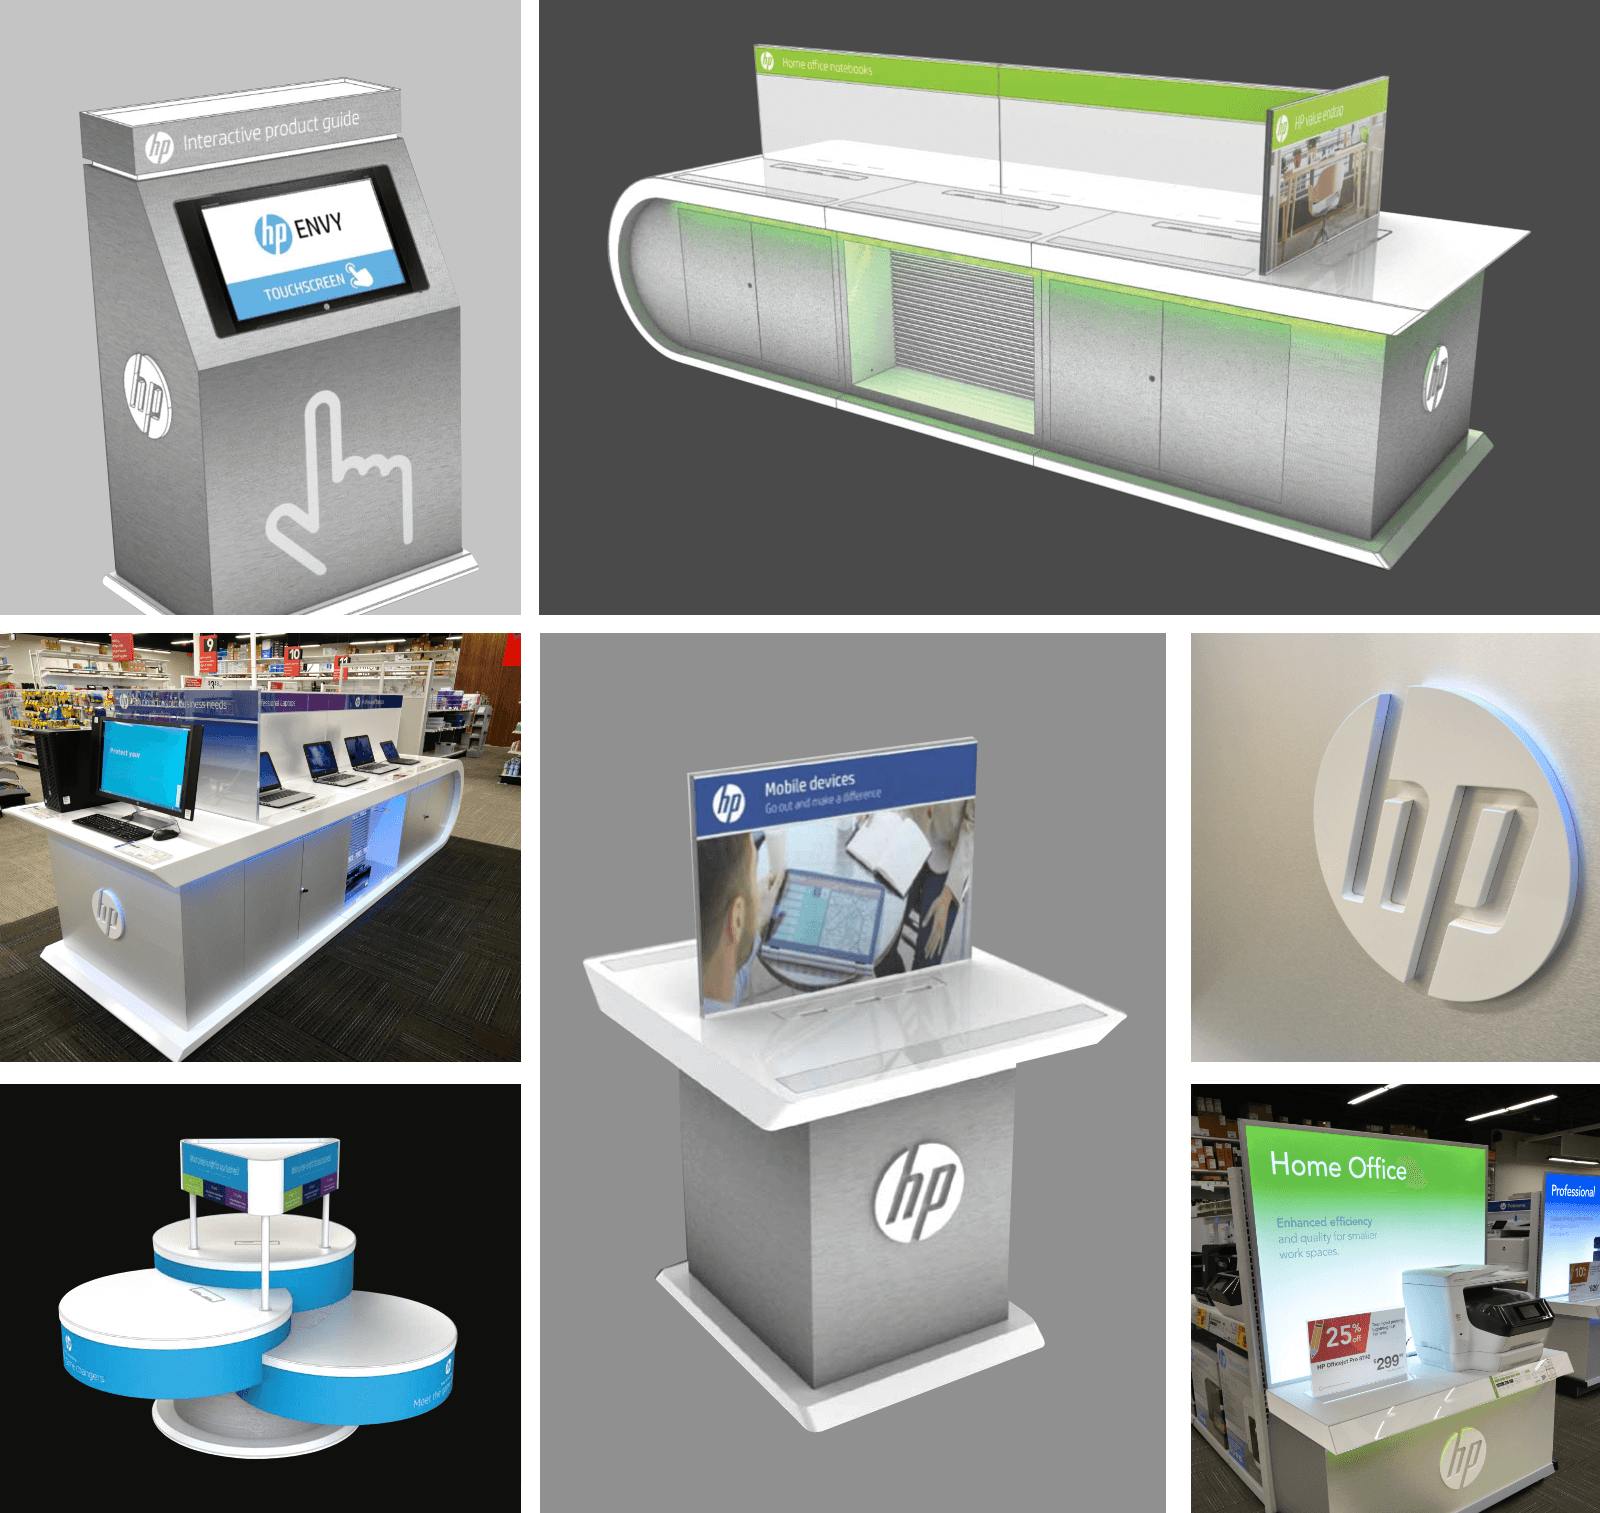 Collage of HP kiosks and desks set inside store